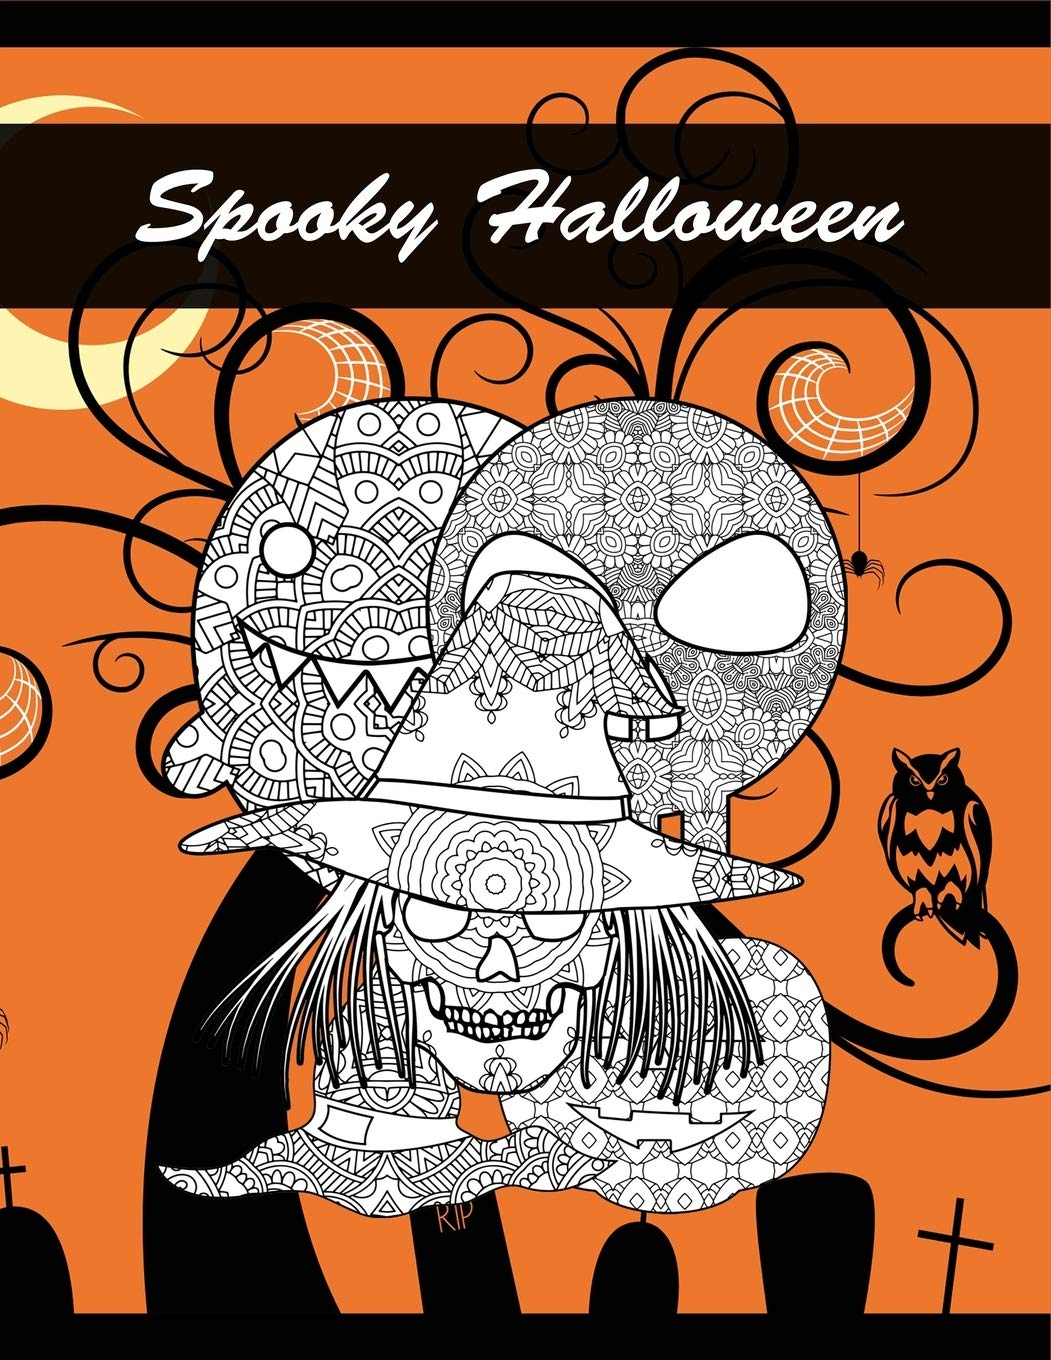 Amazon.com: Spooky Halloween: Coloring Book for Adults Witch ...